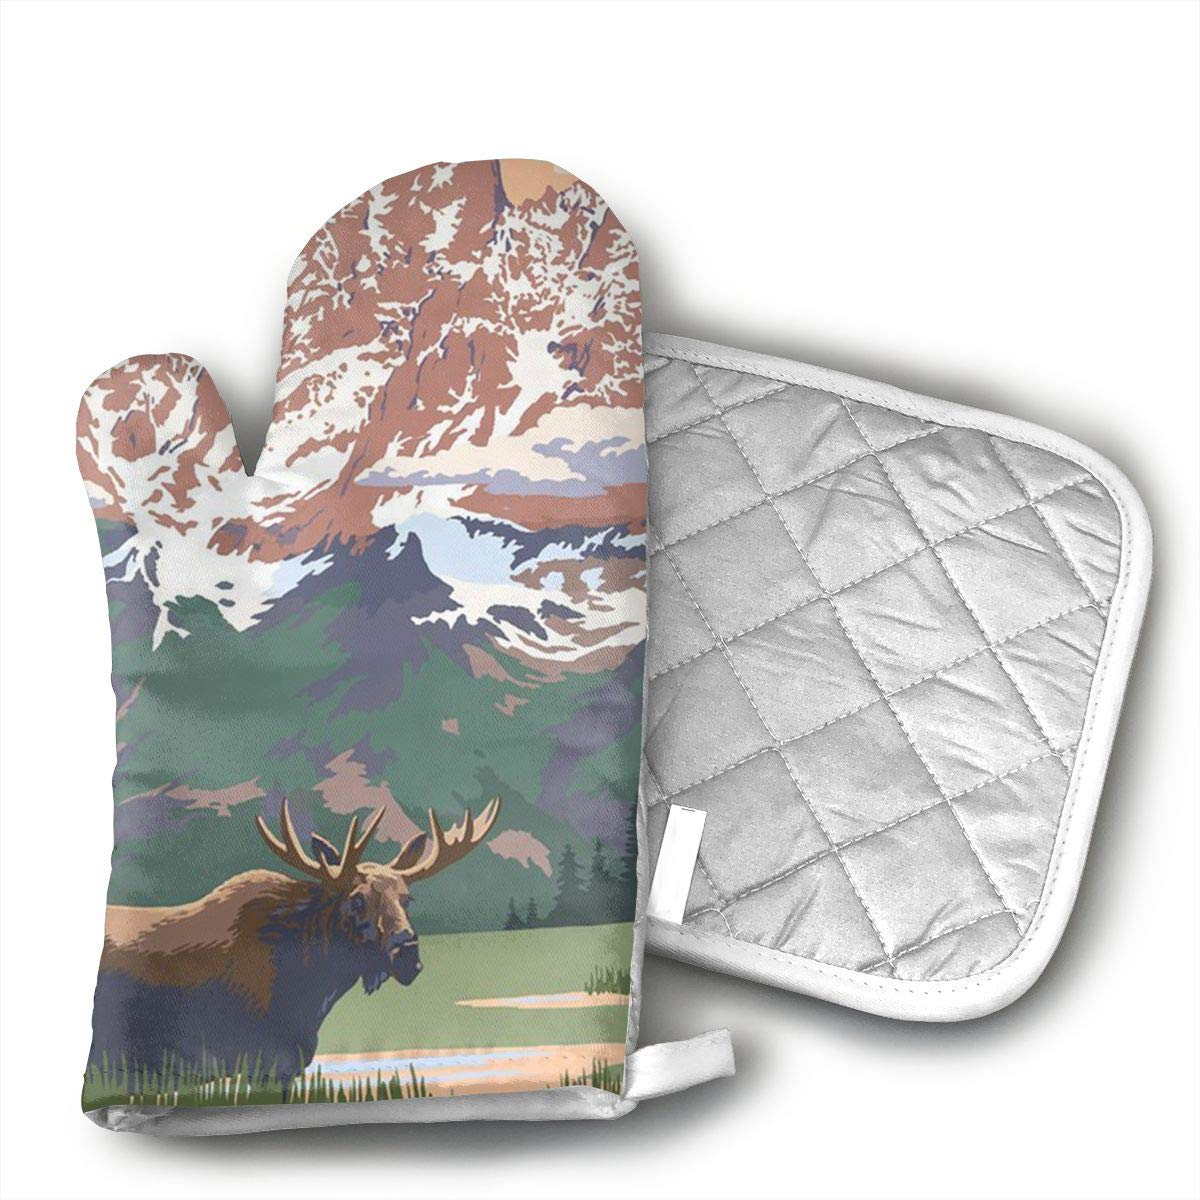 UFKEOJ Grand Teton National Park - Moose and Mountains Oven Mitts,BBQ Microwave Baking Protective Glove and Hot Pot Heatproof Mat Set,Cotton, Machine Washable